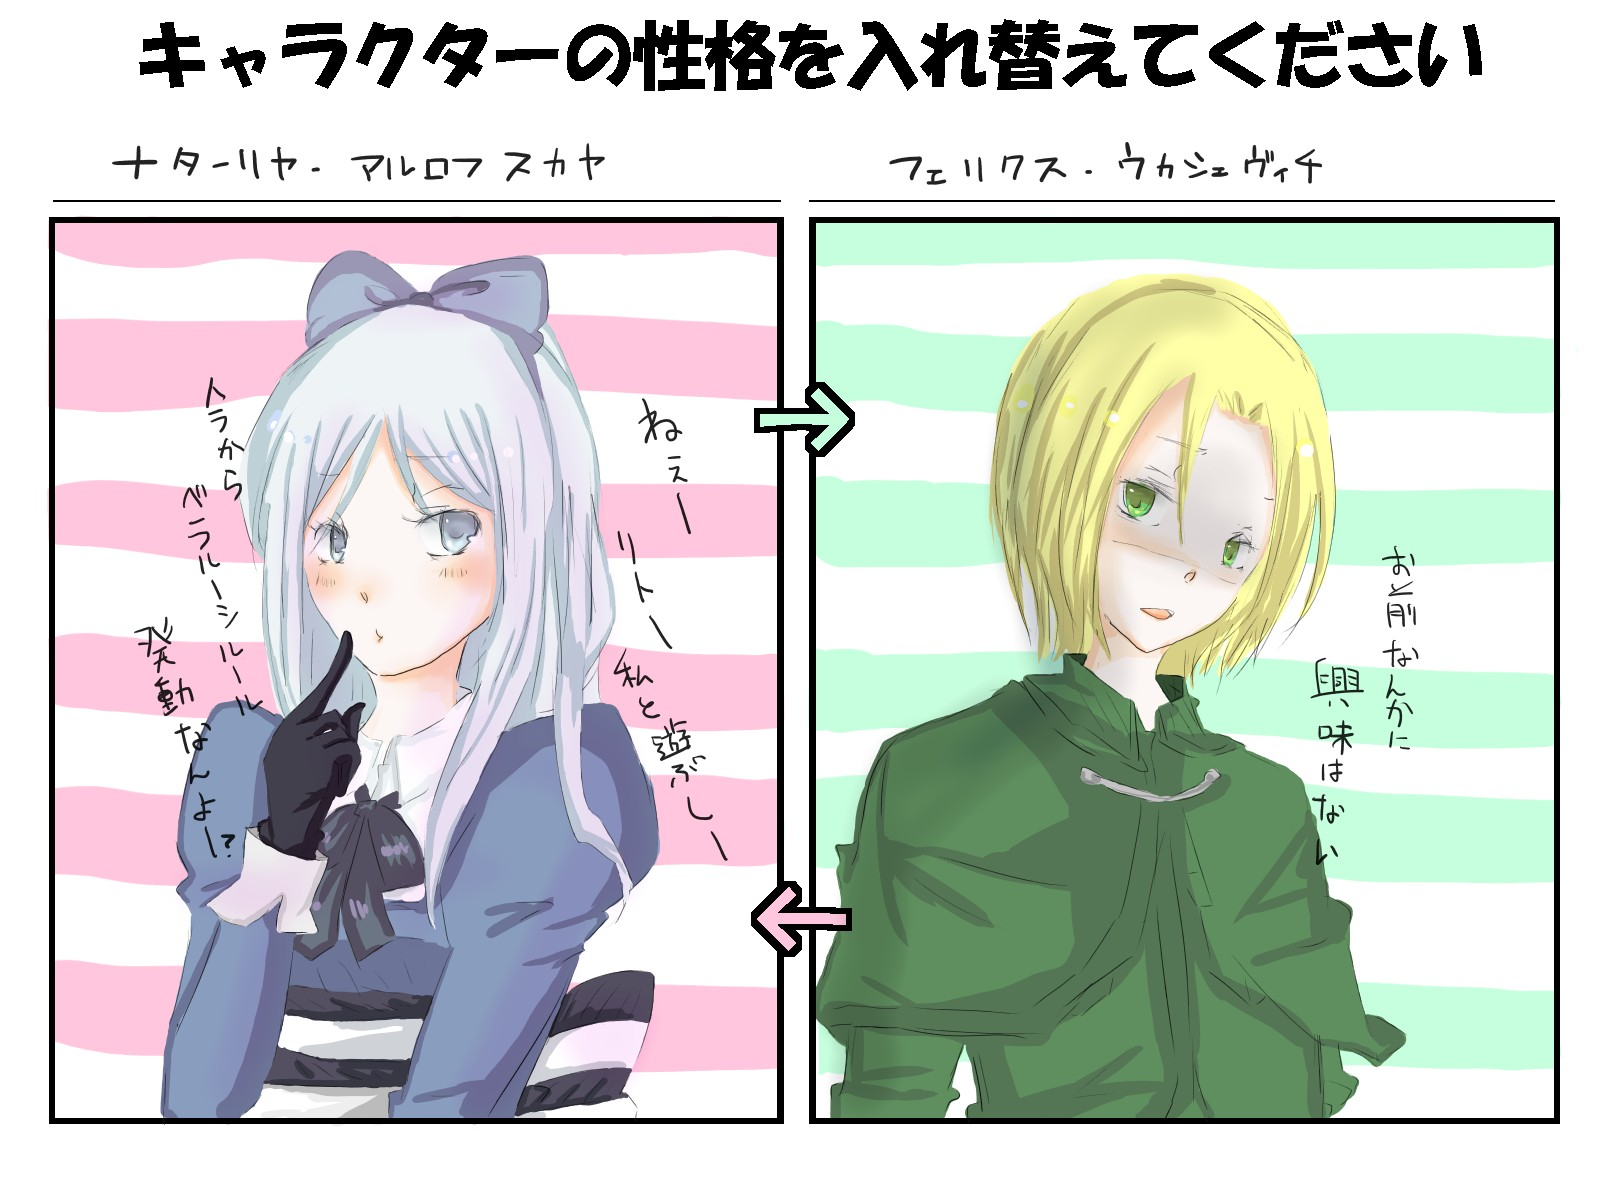 Personality Switch Out Of Character Page Of Zerochan - Anime hairstyle and personality